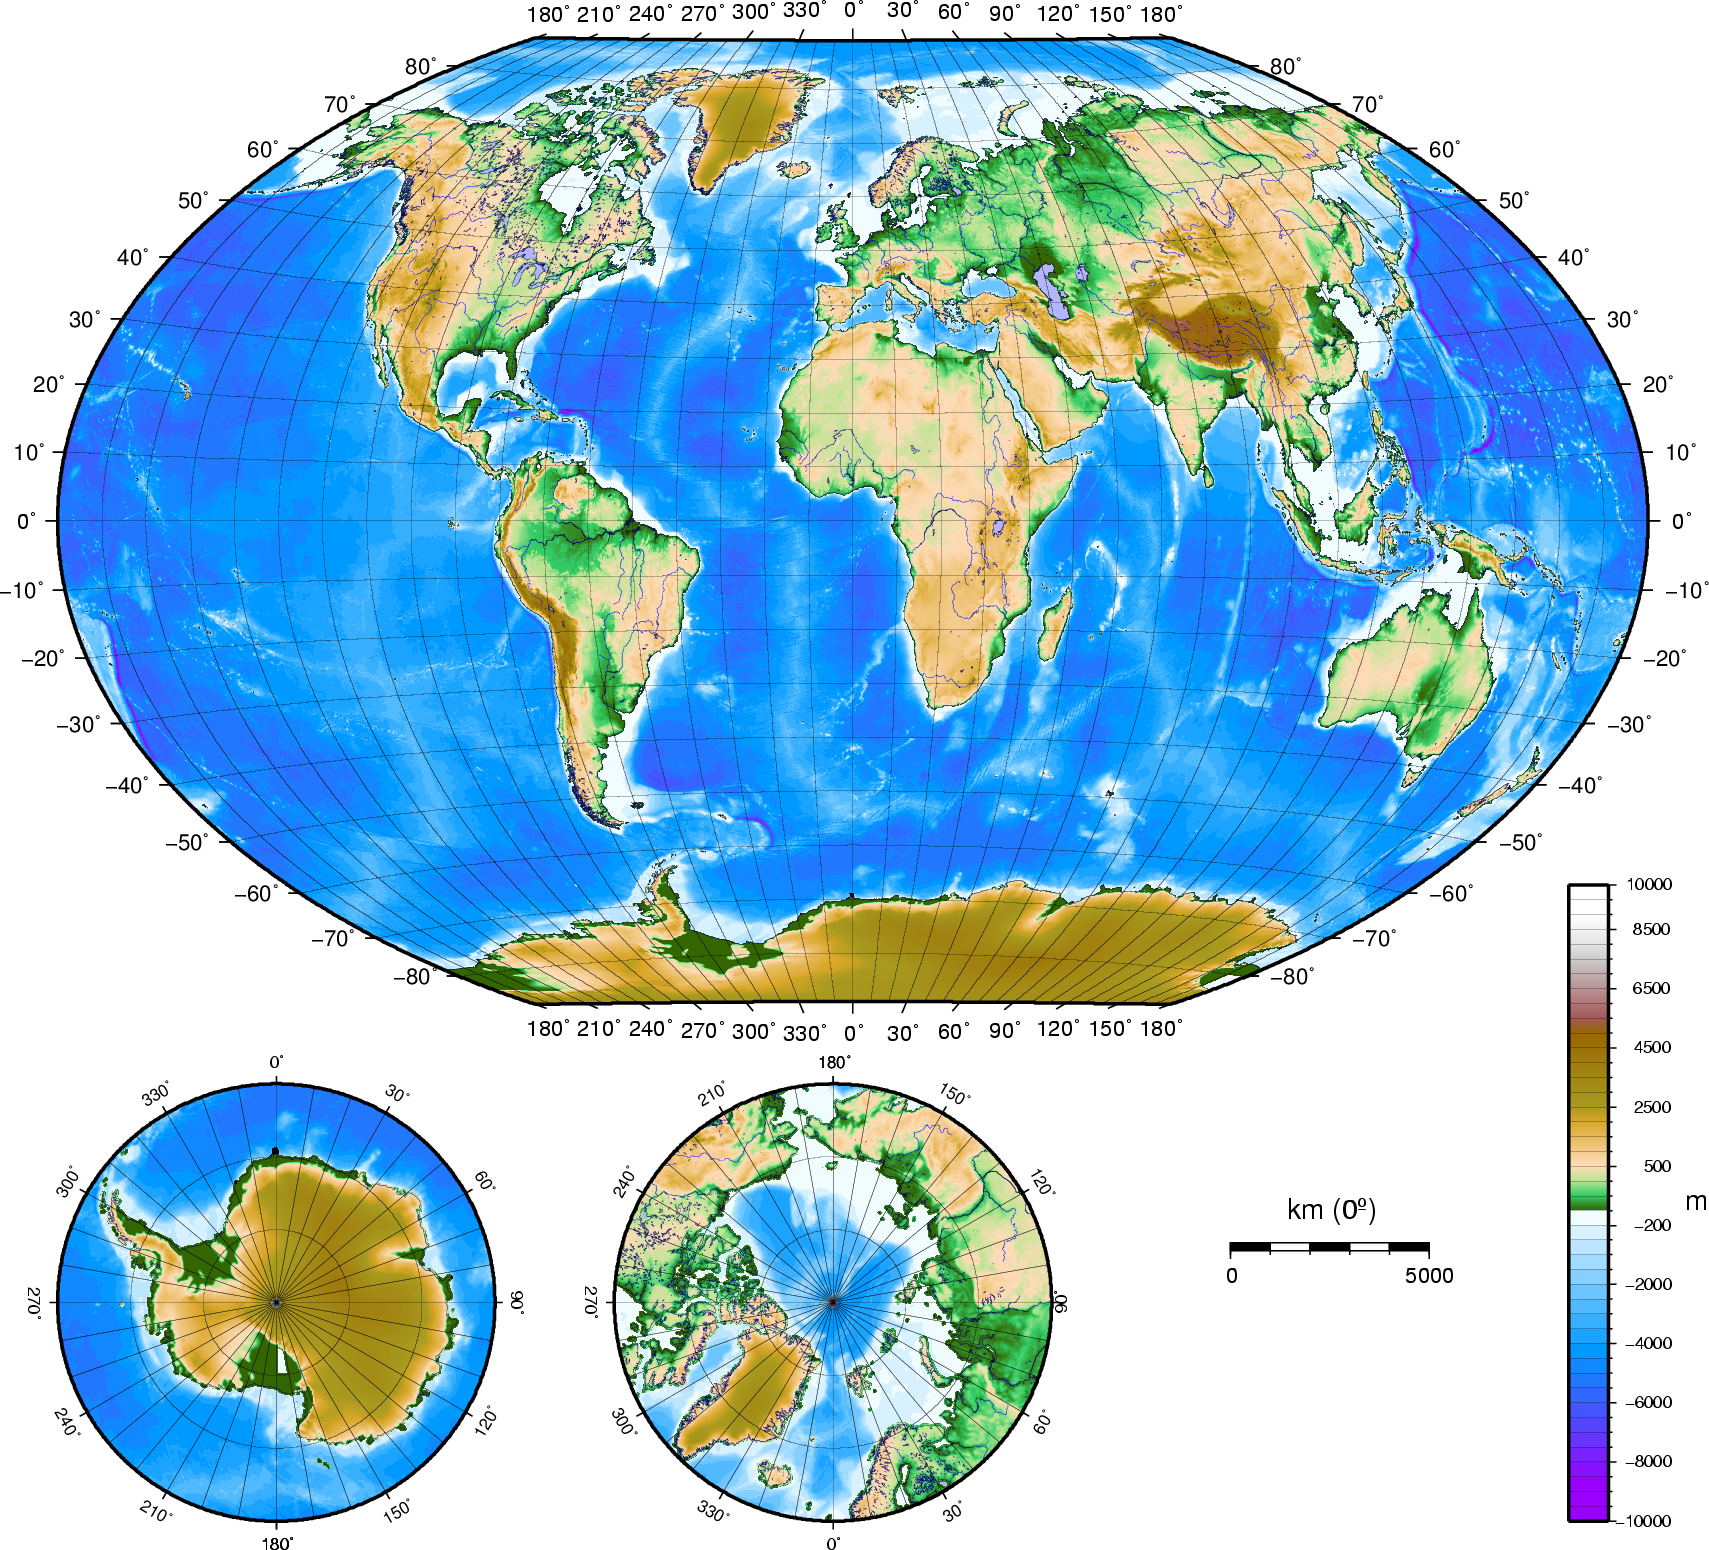 Atlas Of The WorldPhysical And Topographical Wikimedia Commons - Topographic map of the world